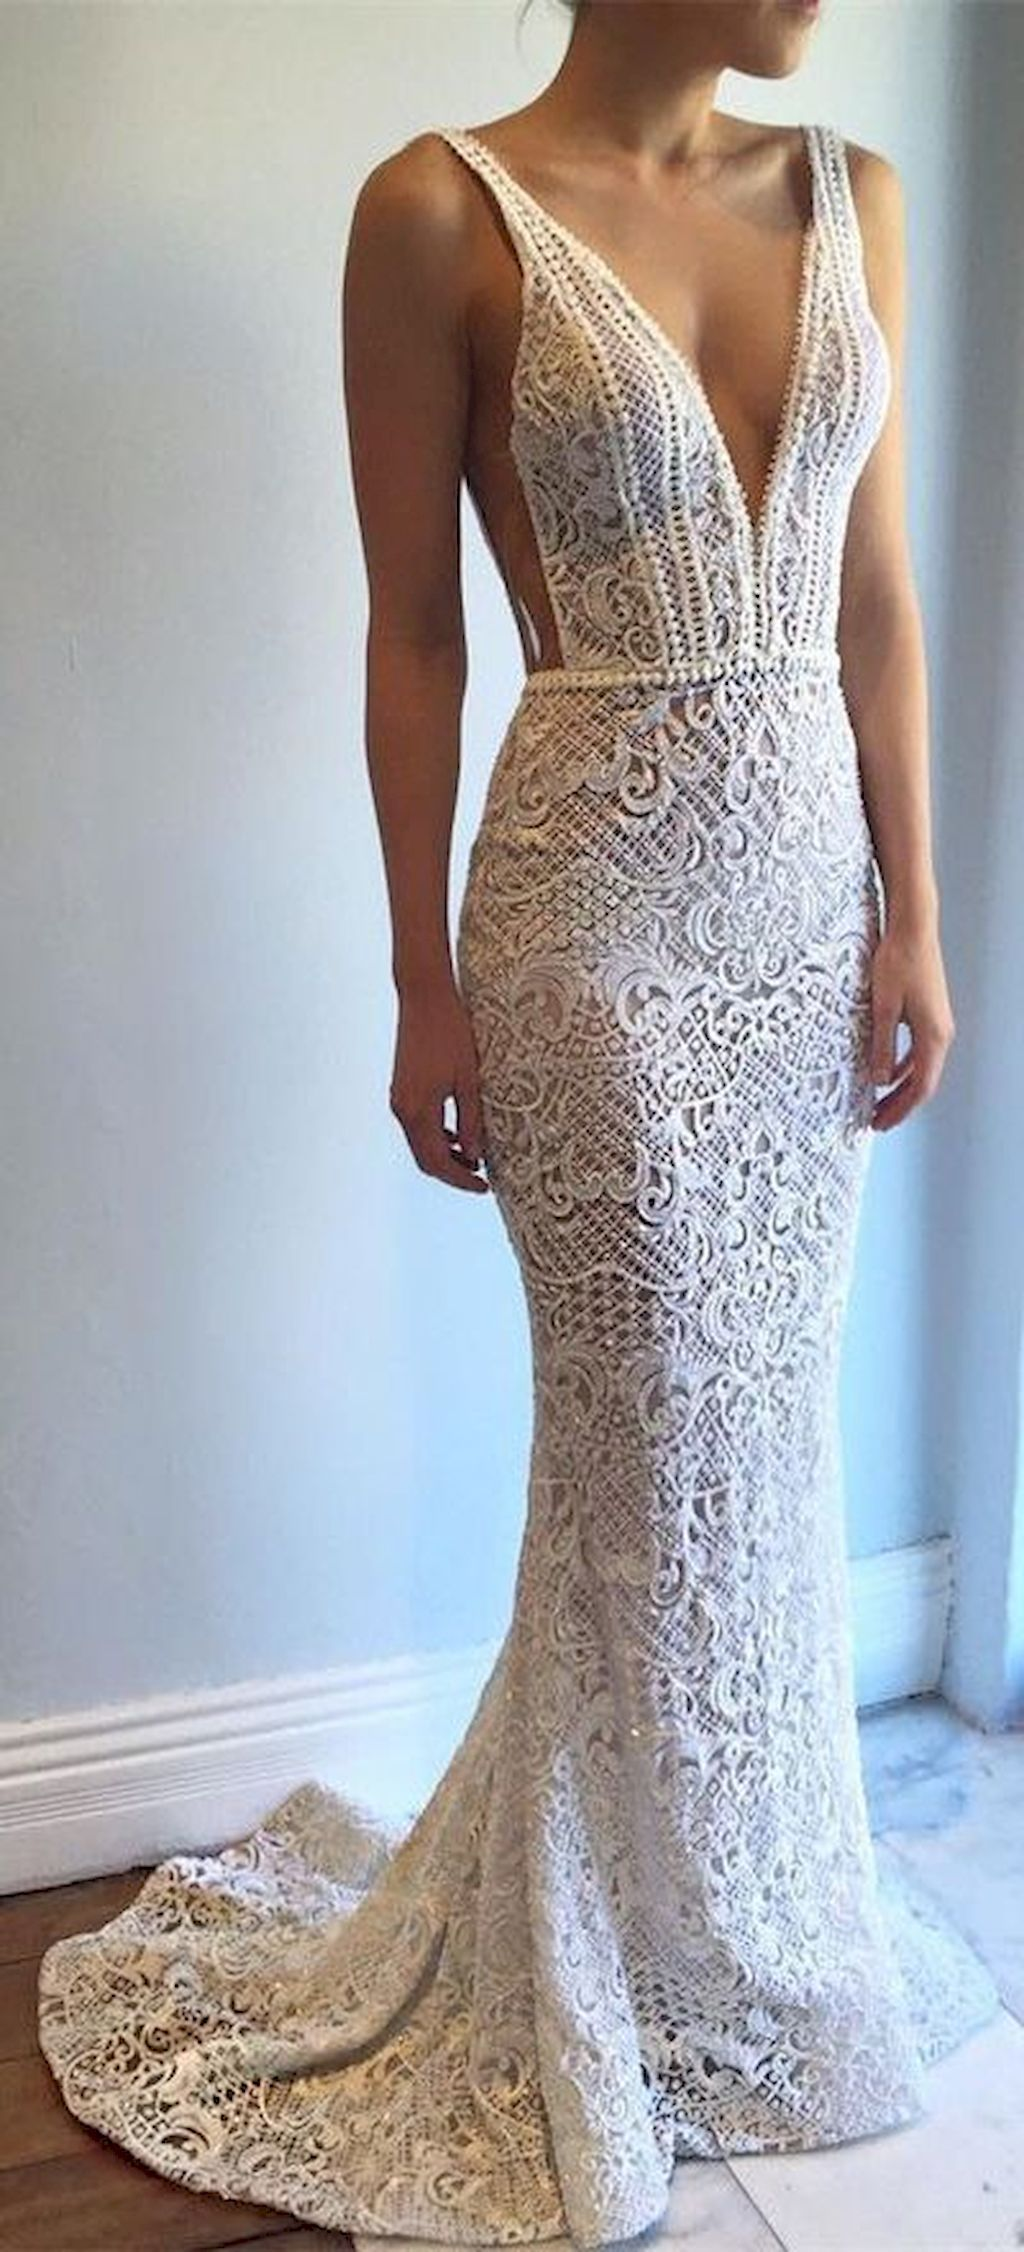 Awesome 95 Gorgeous Backless Wedding Dresses Design Ideas Https Bitecloth